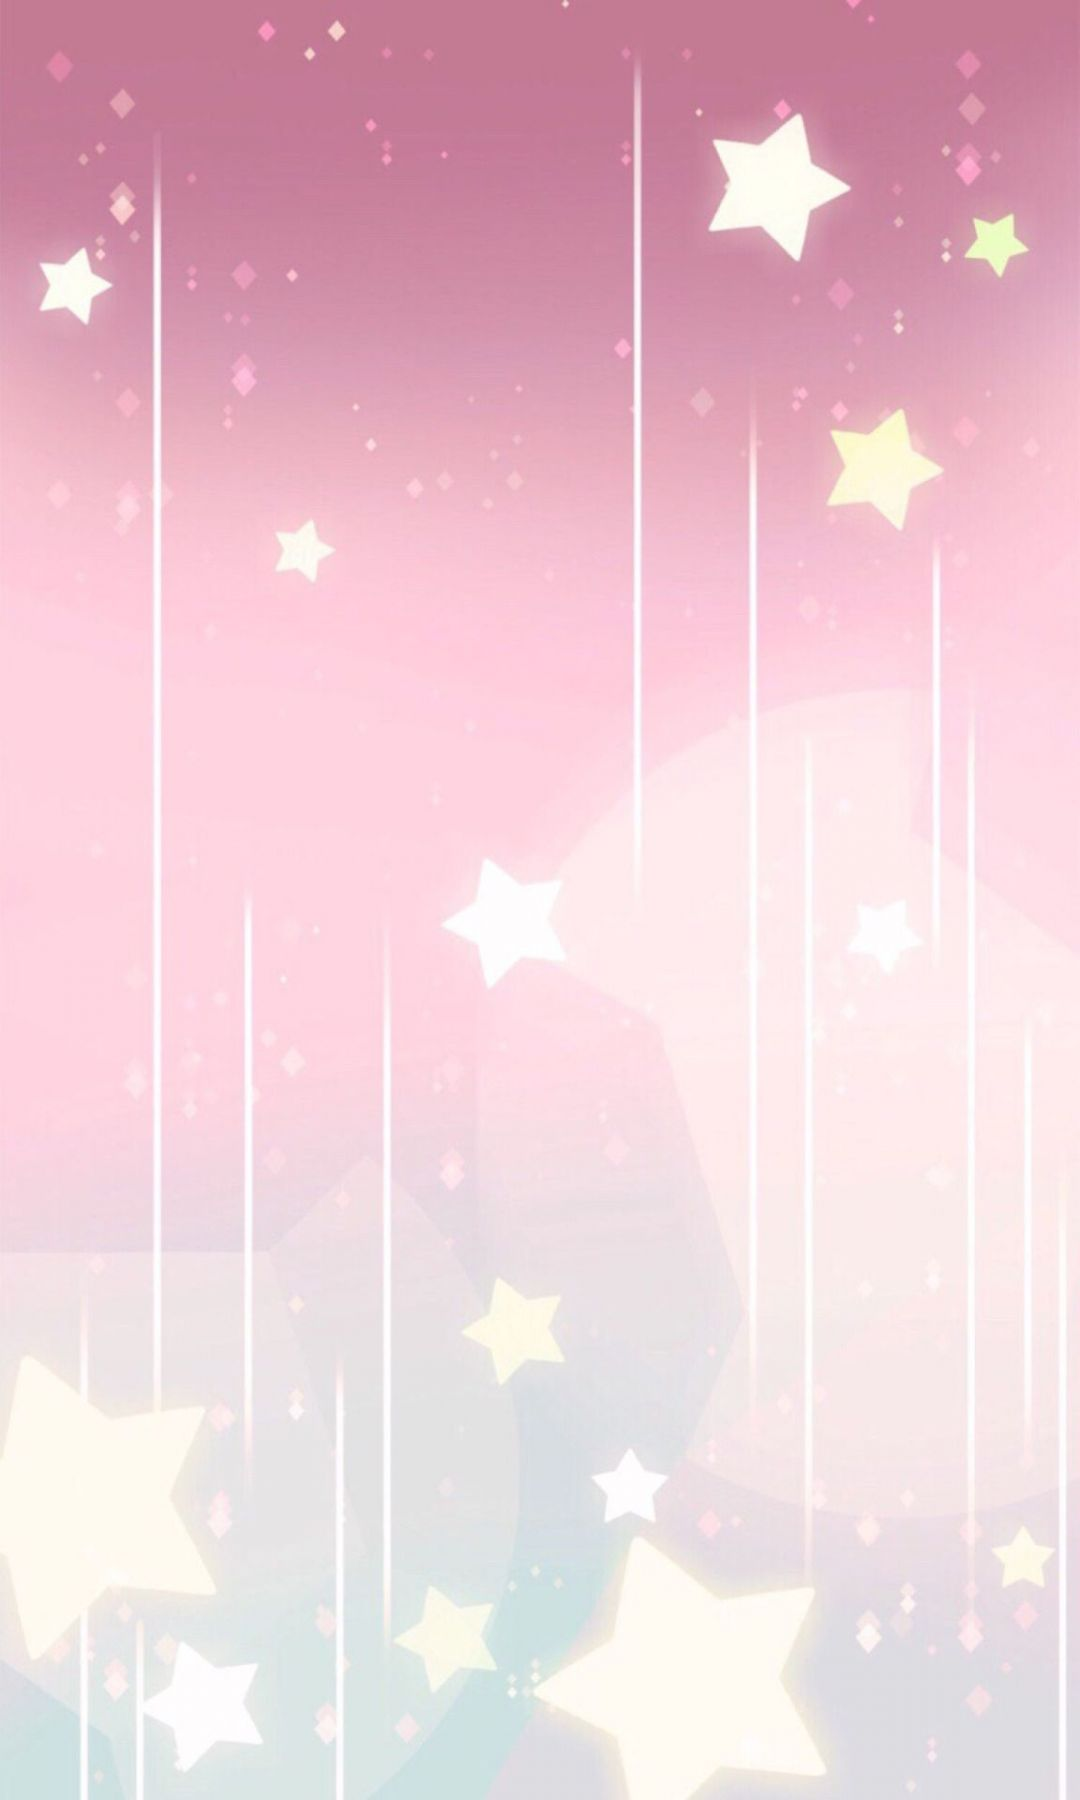 30 Pastel Aesthetic Anime Android Iphone Desktop Hd